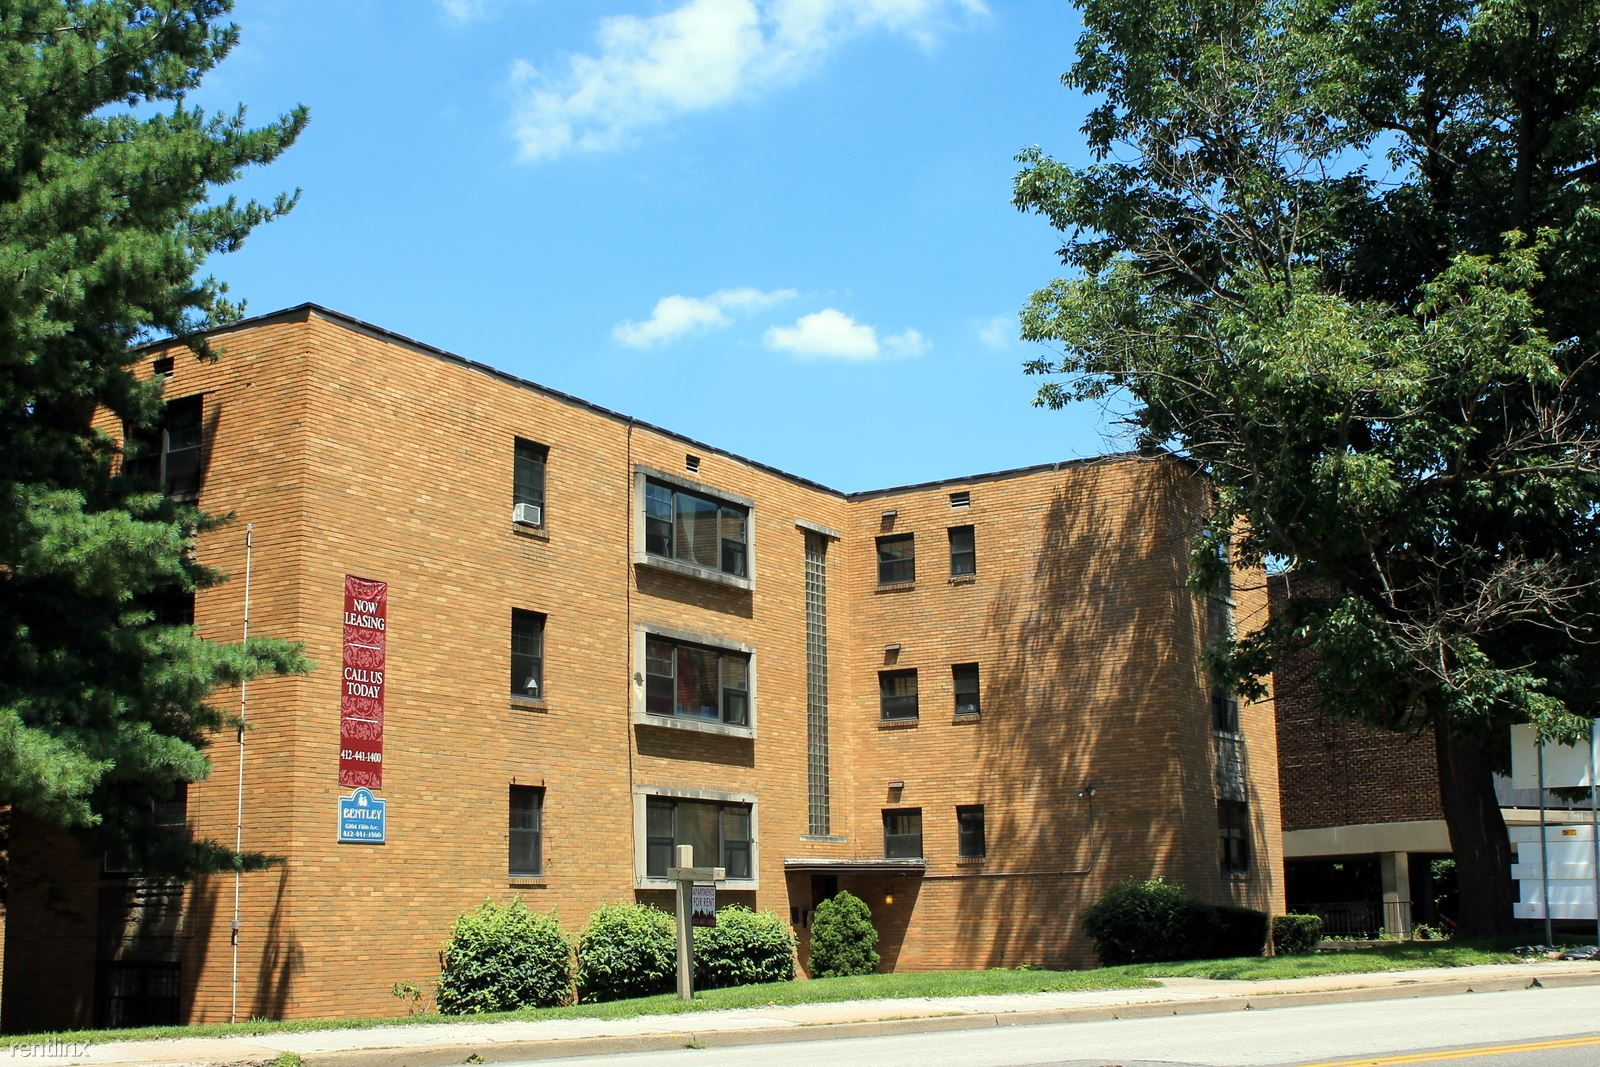 6201 5th Ave, Pittsburgh, PA - $1,199